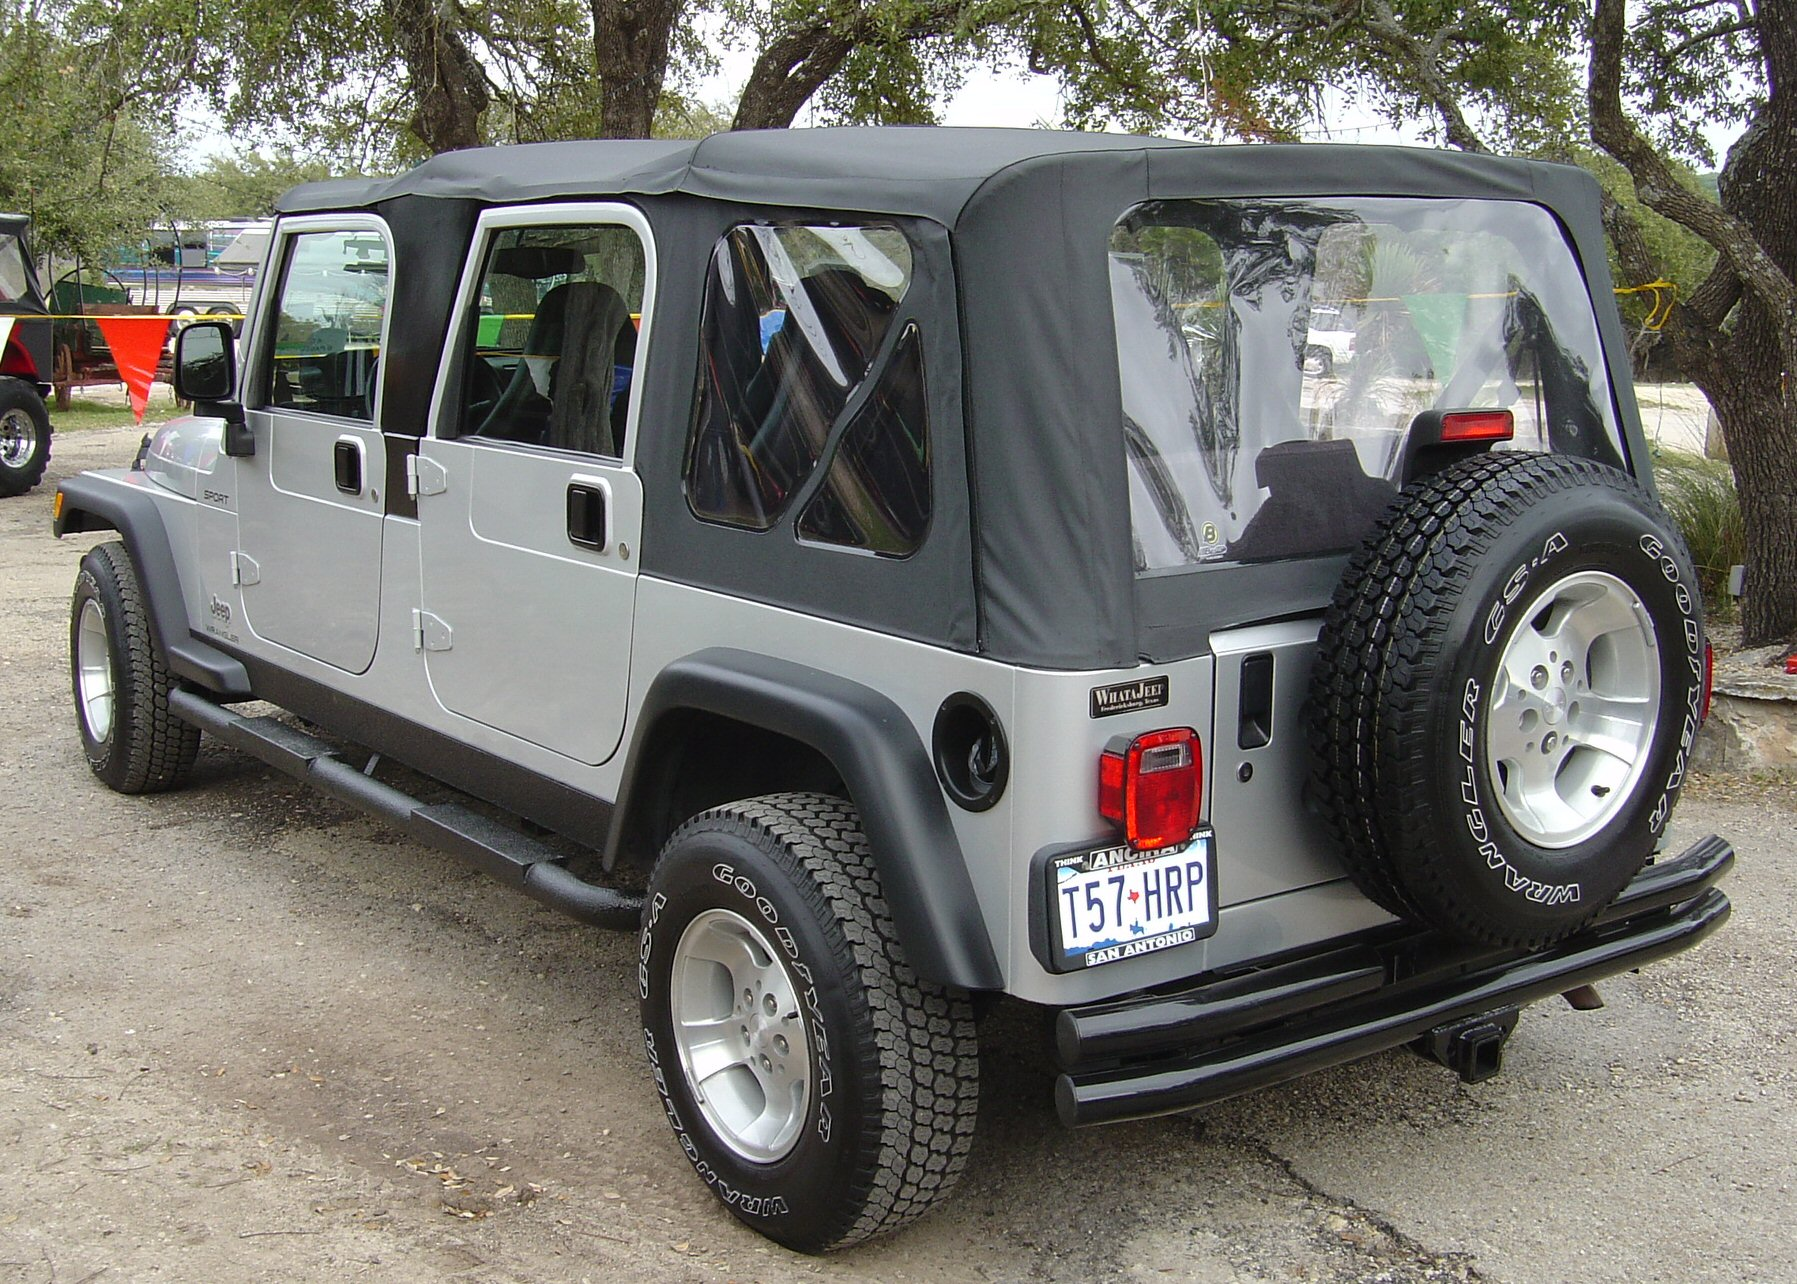 4 four door jeep wrangler. Black Bedroom Furniture Sets. Home Design Ideas